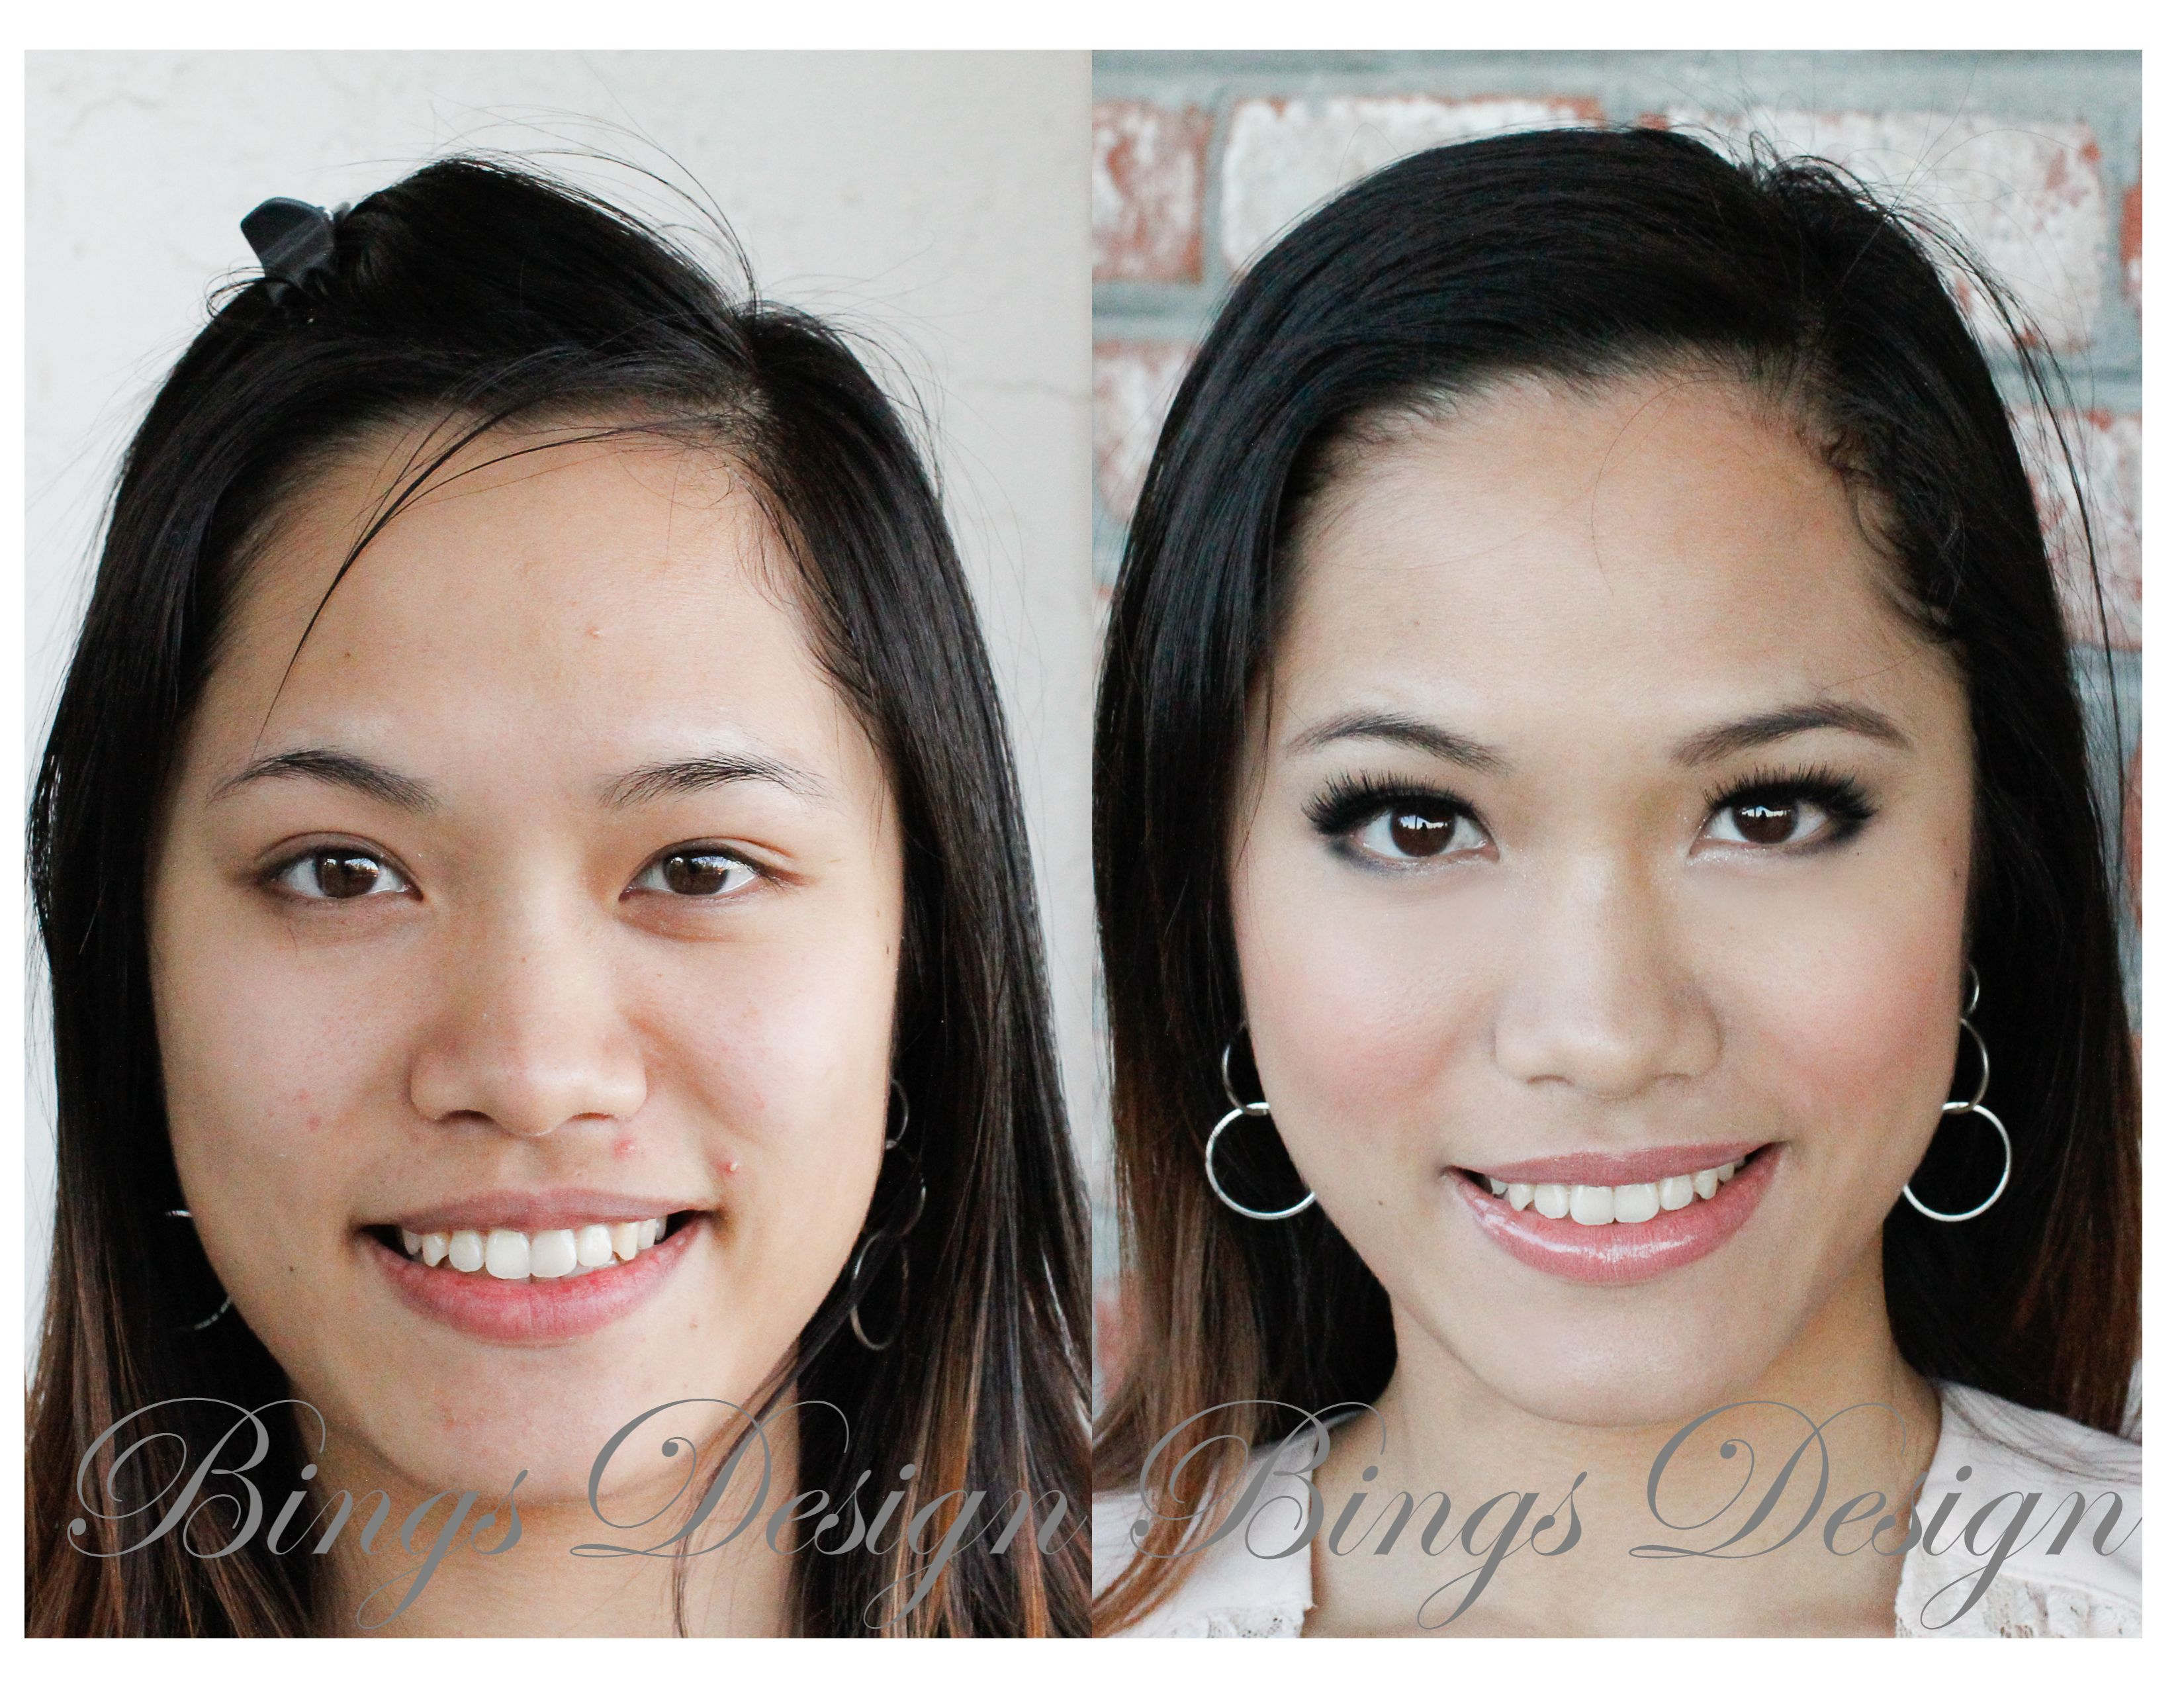 Without makeup she is already pretty. To transform her